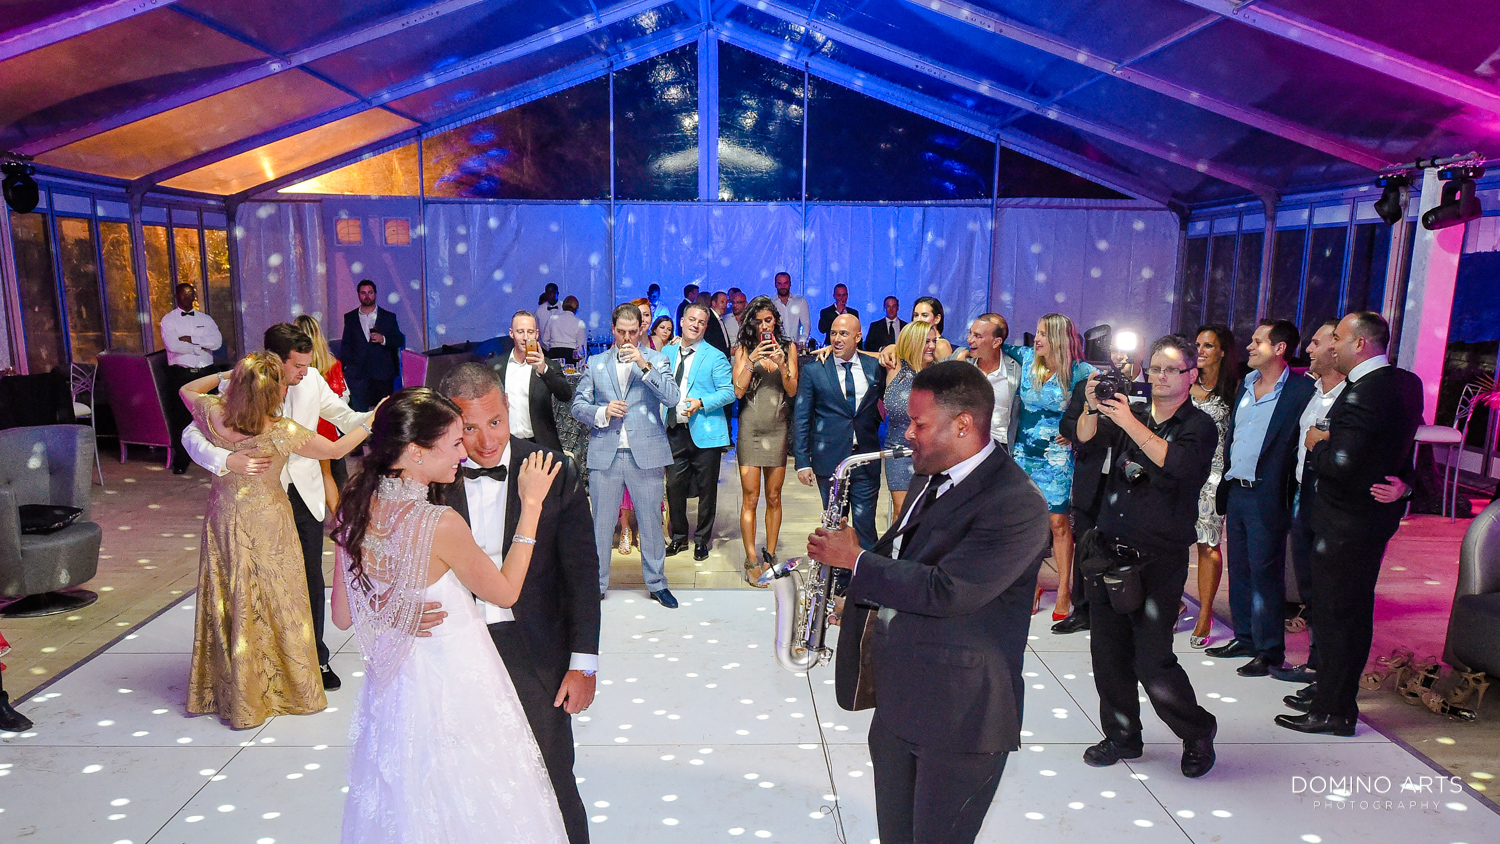 Fun wedding picture of bride and groom at One&Only Ocean Club Bahamas